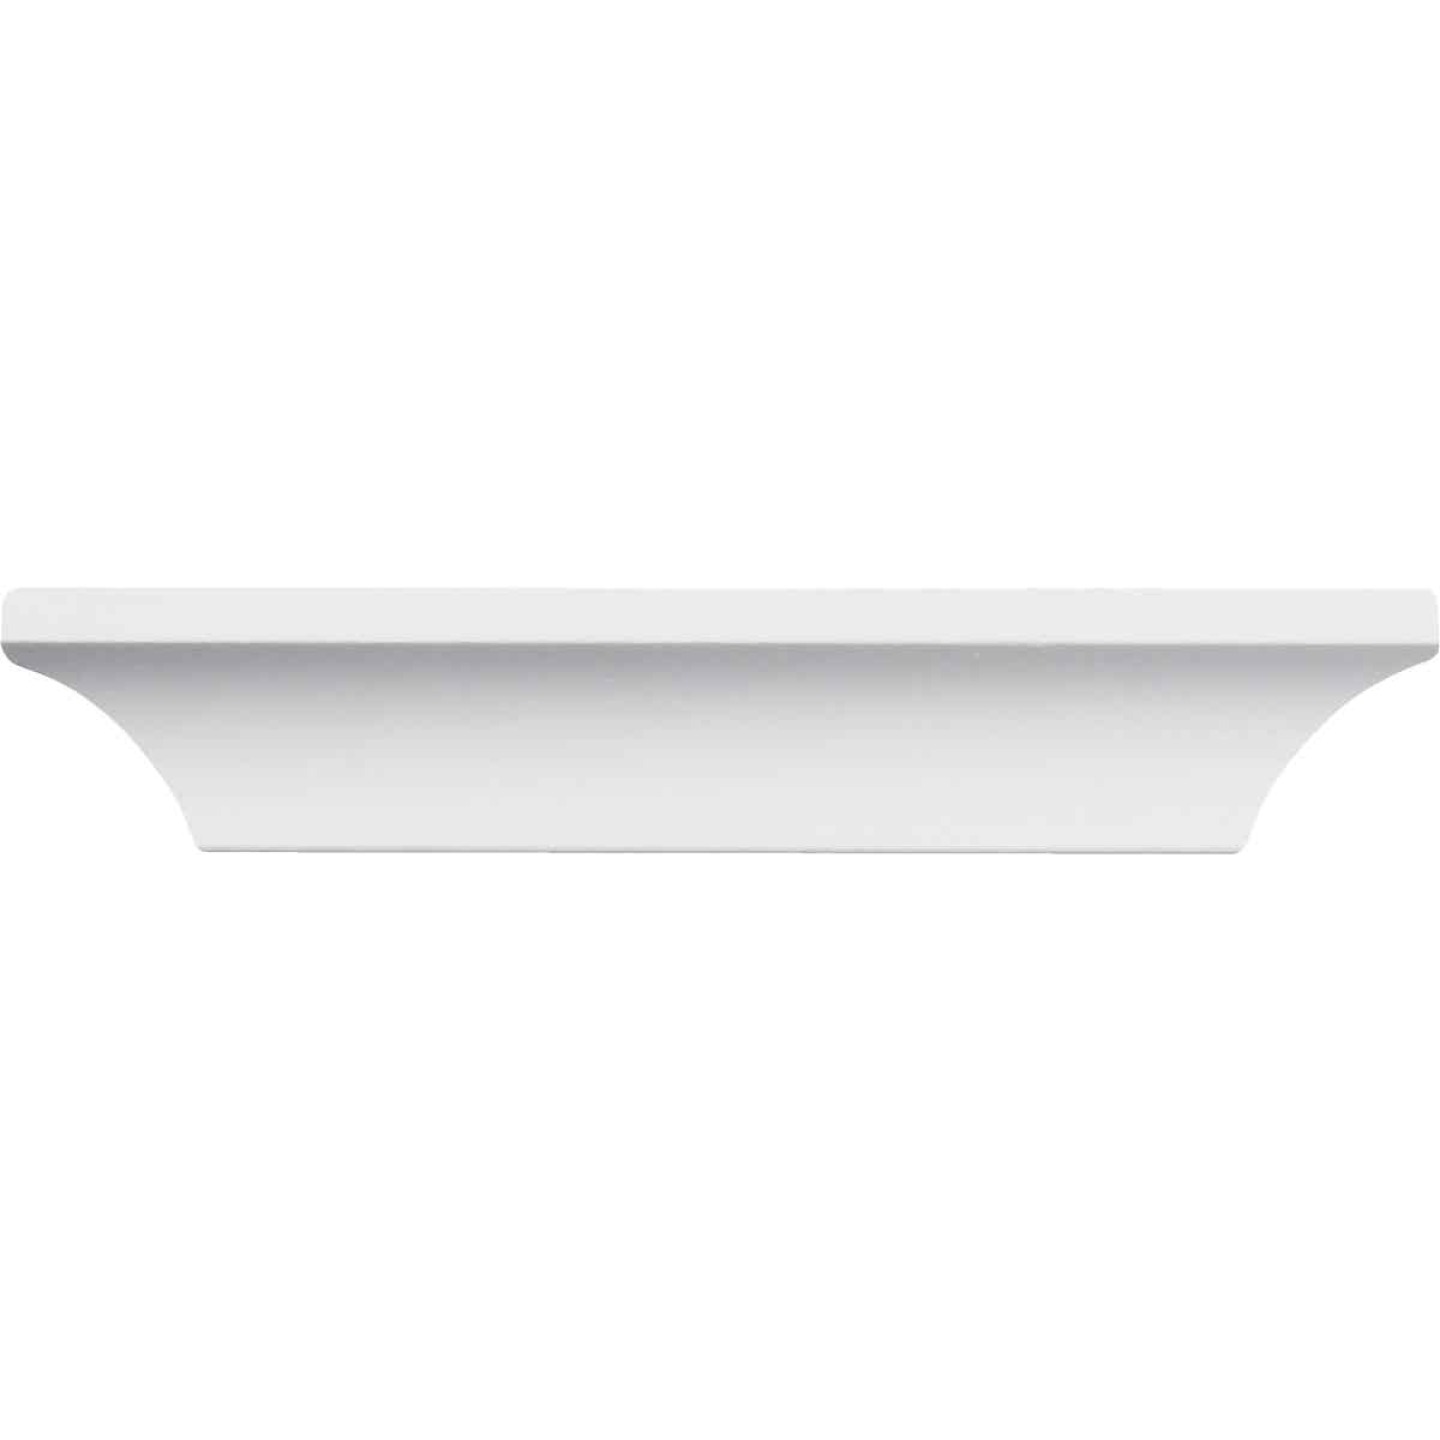 Inteplast Building Products 1/2 In. W. x 1-9/16 In. H. x 8 Ft. L. Crystal White Polystyrene Cove Molding Image 3